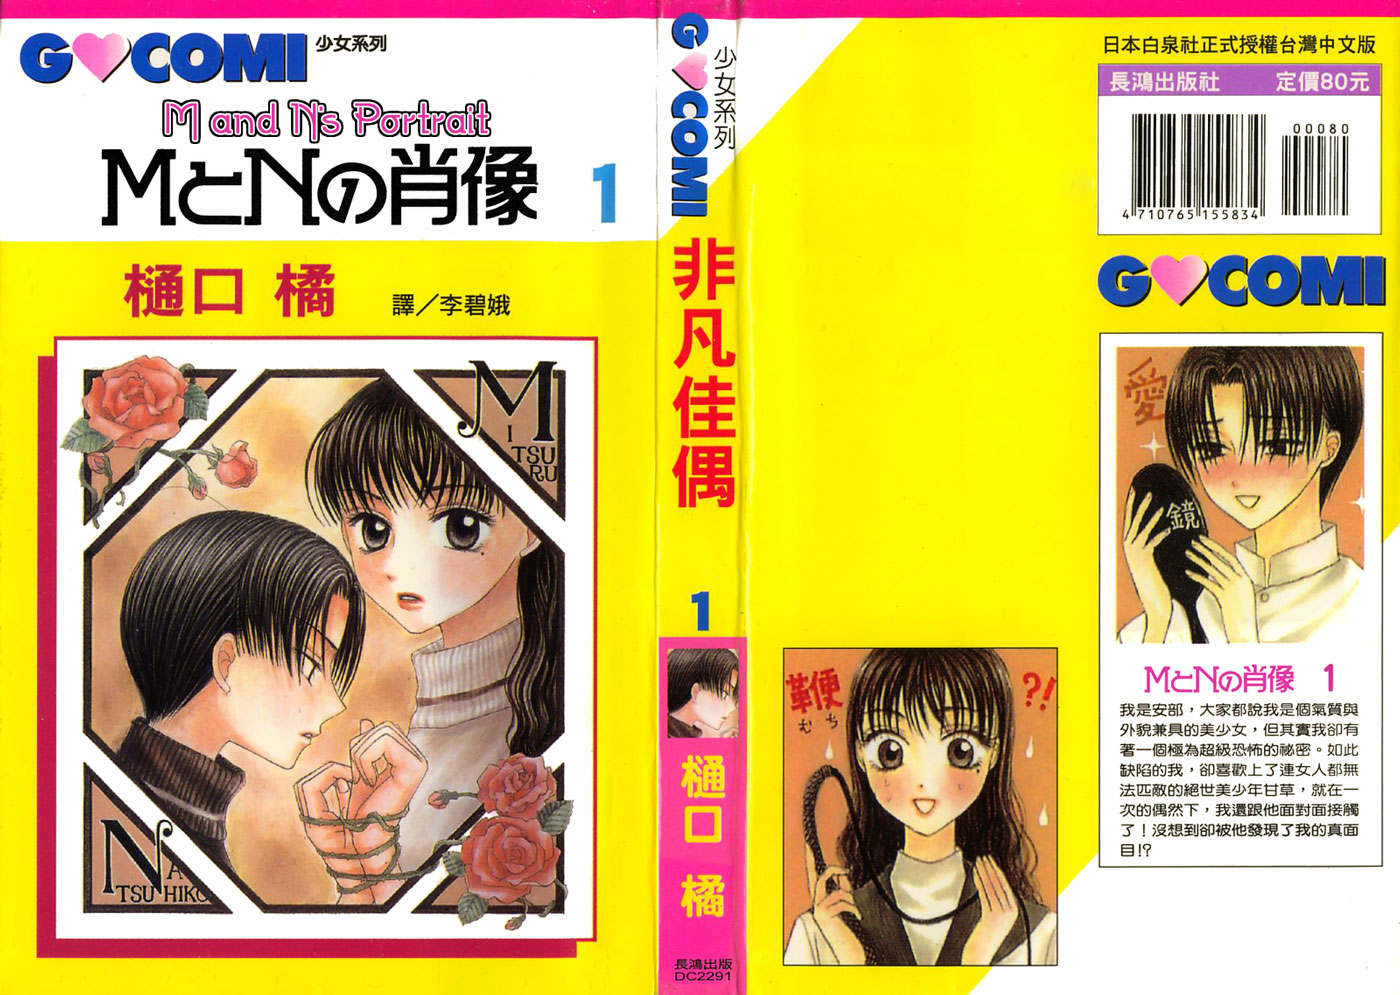 M To N No Shouzou Vol 1 Chapter 1 Mangahasu With over 130 trillion pages in google's search index, this tutorial shows you how to use google advanced search operators like a pro with 9 actionable tips. mangahasu